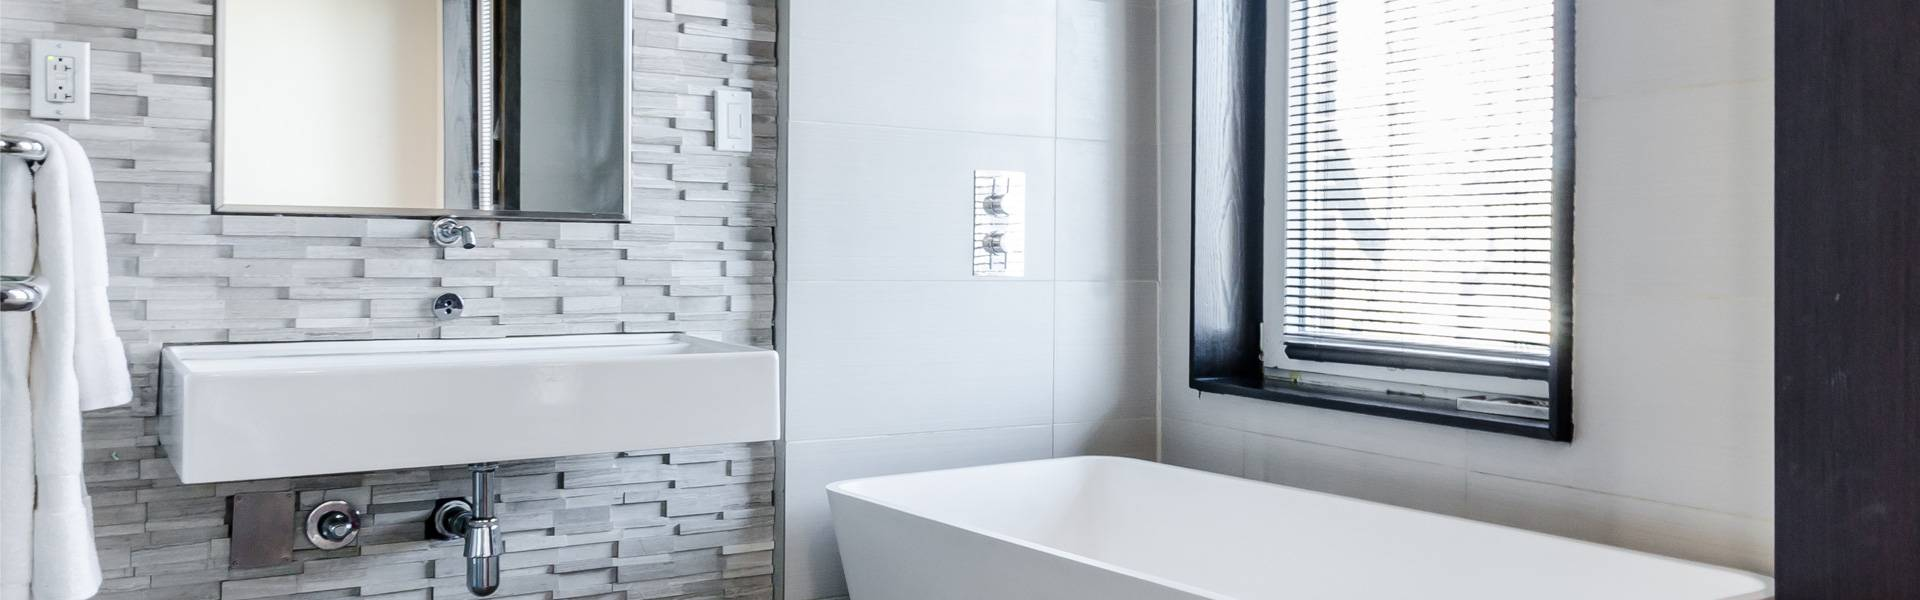 thin grey slate tiles on wall of a large mirror and bathroom sink